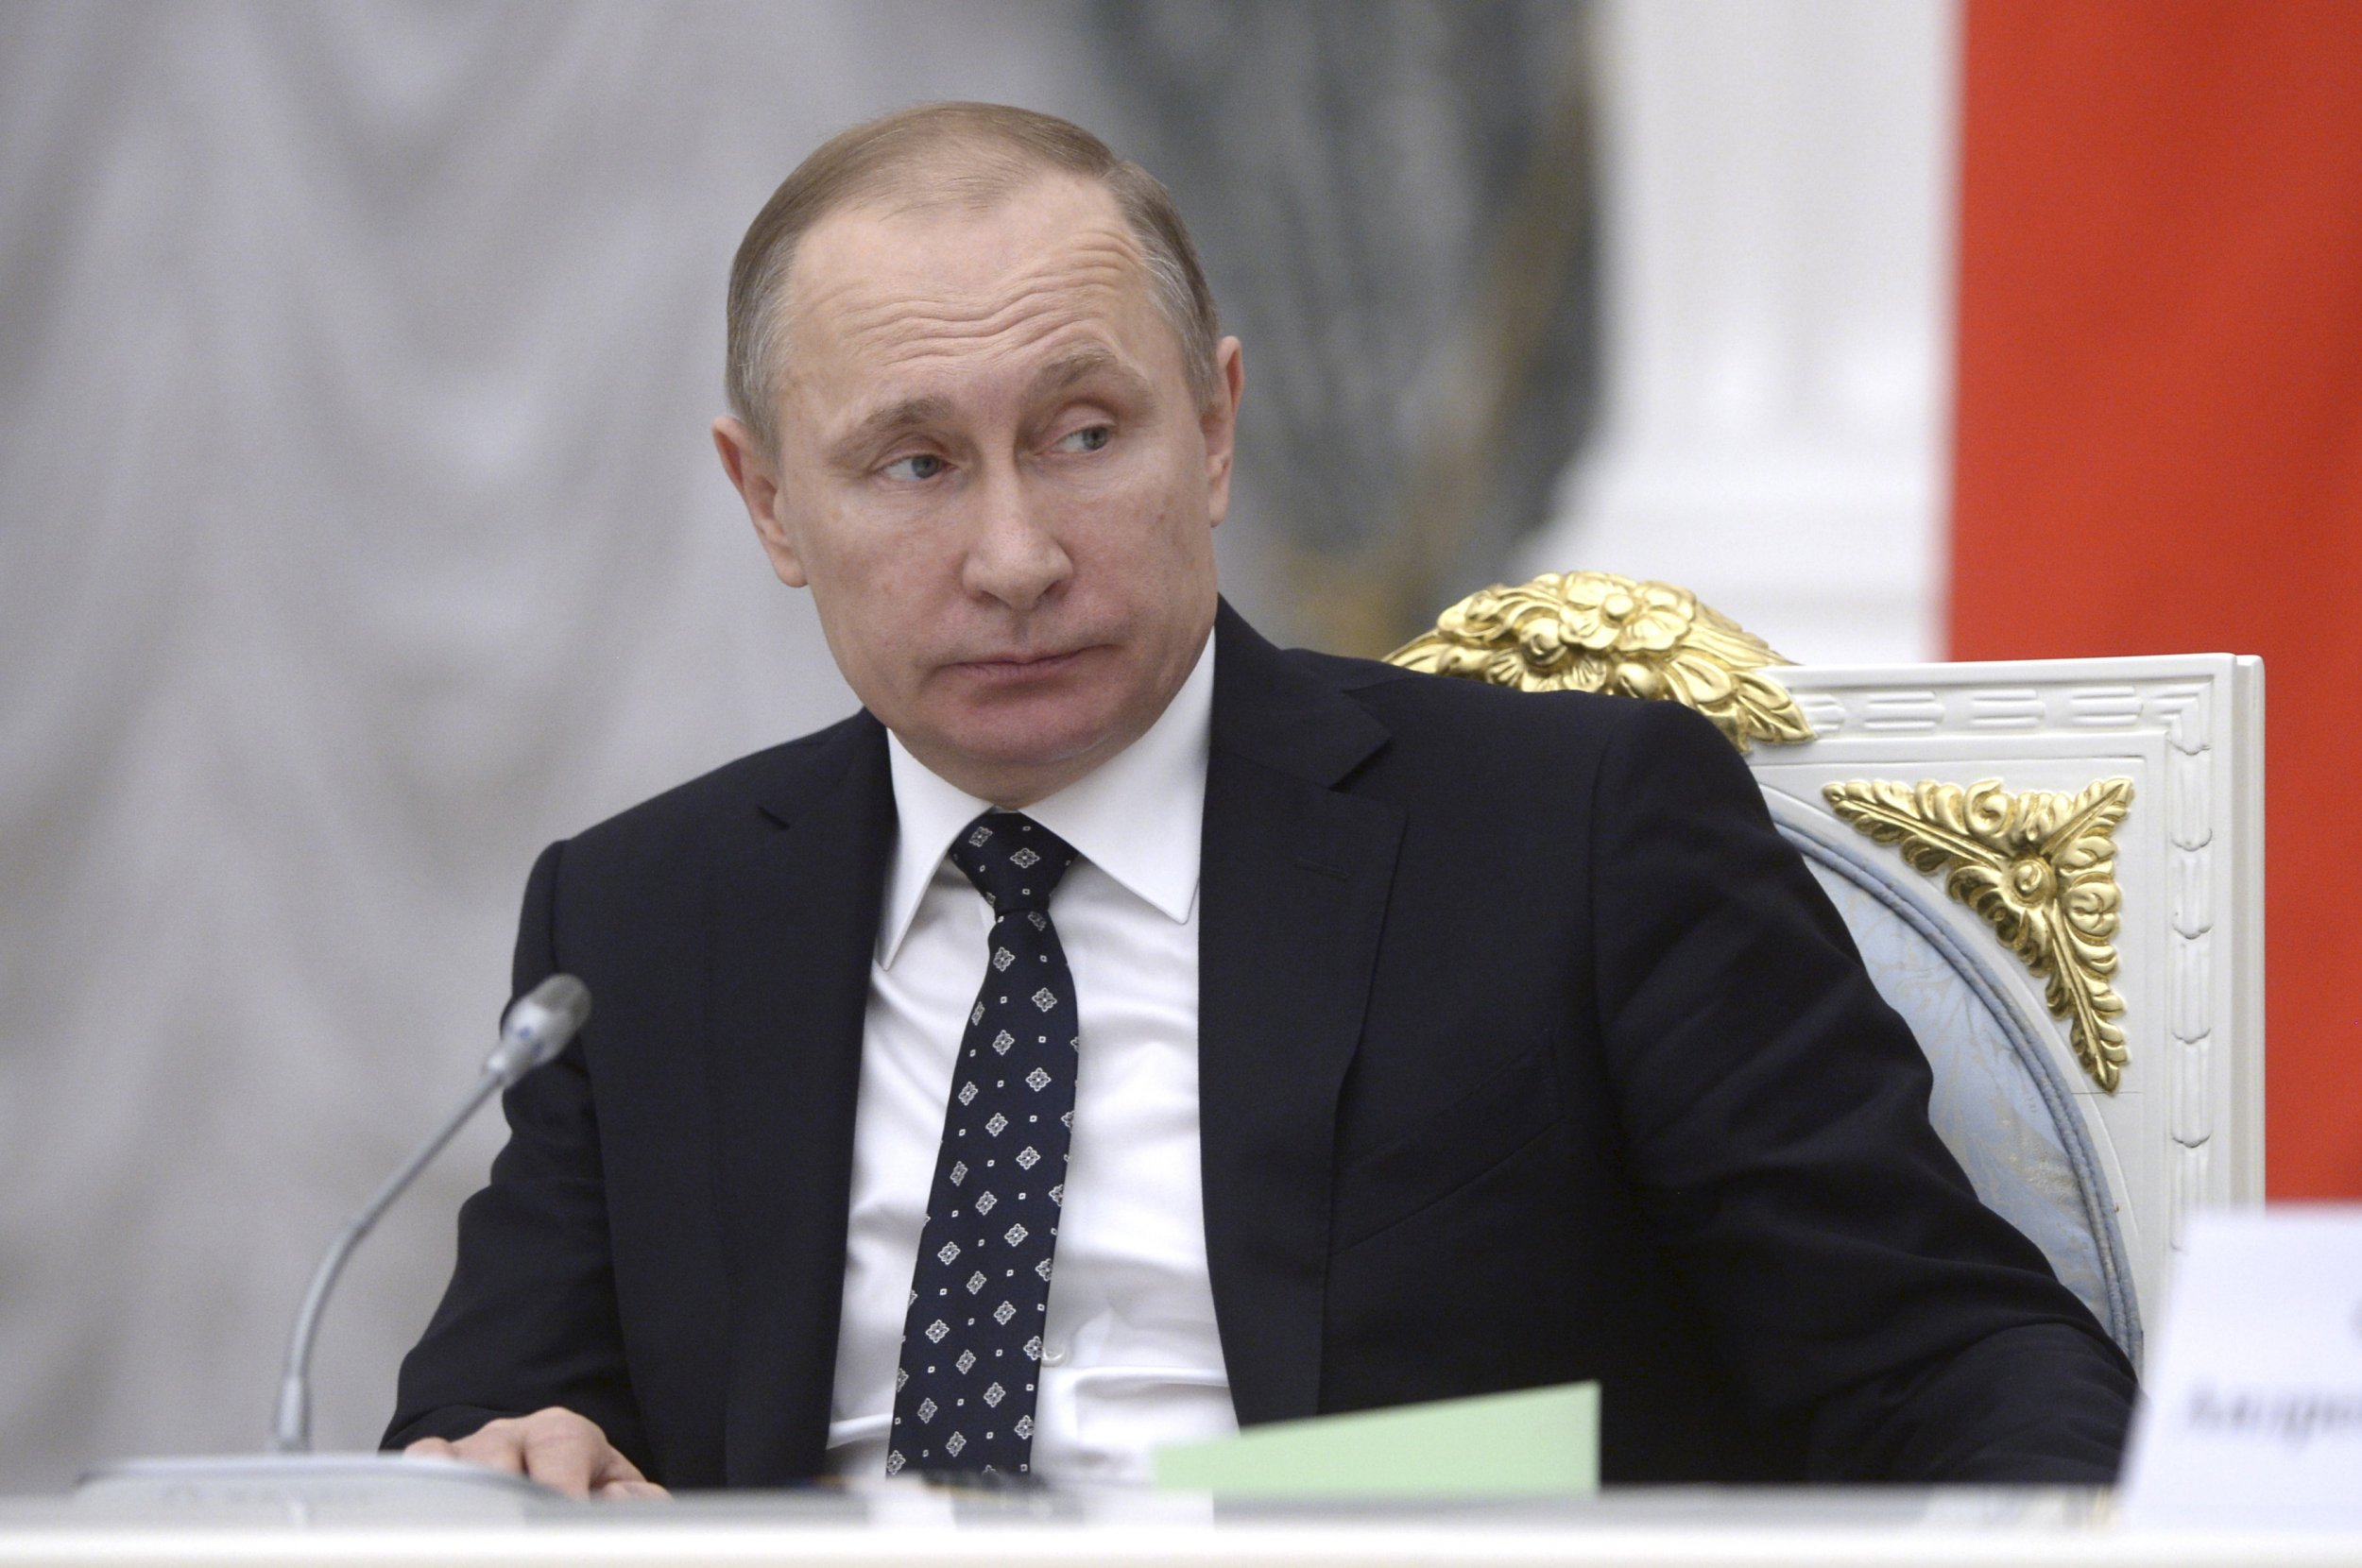 The tide is going out on putin